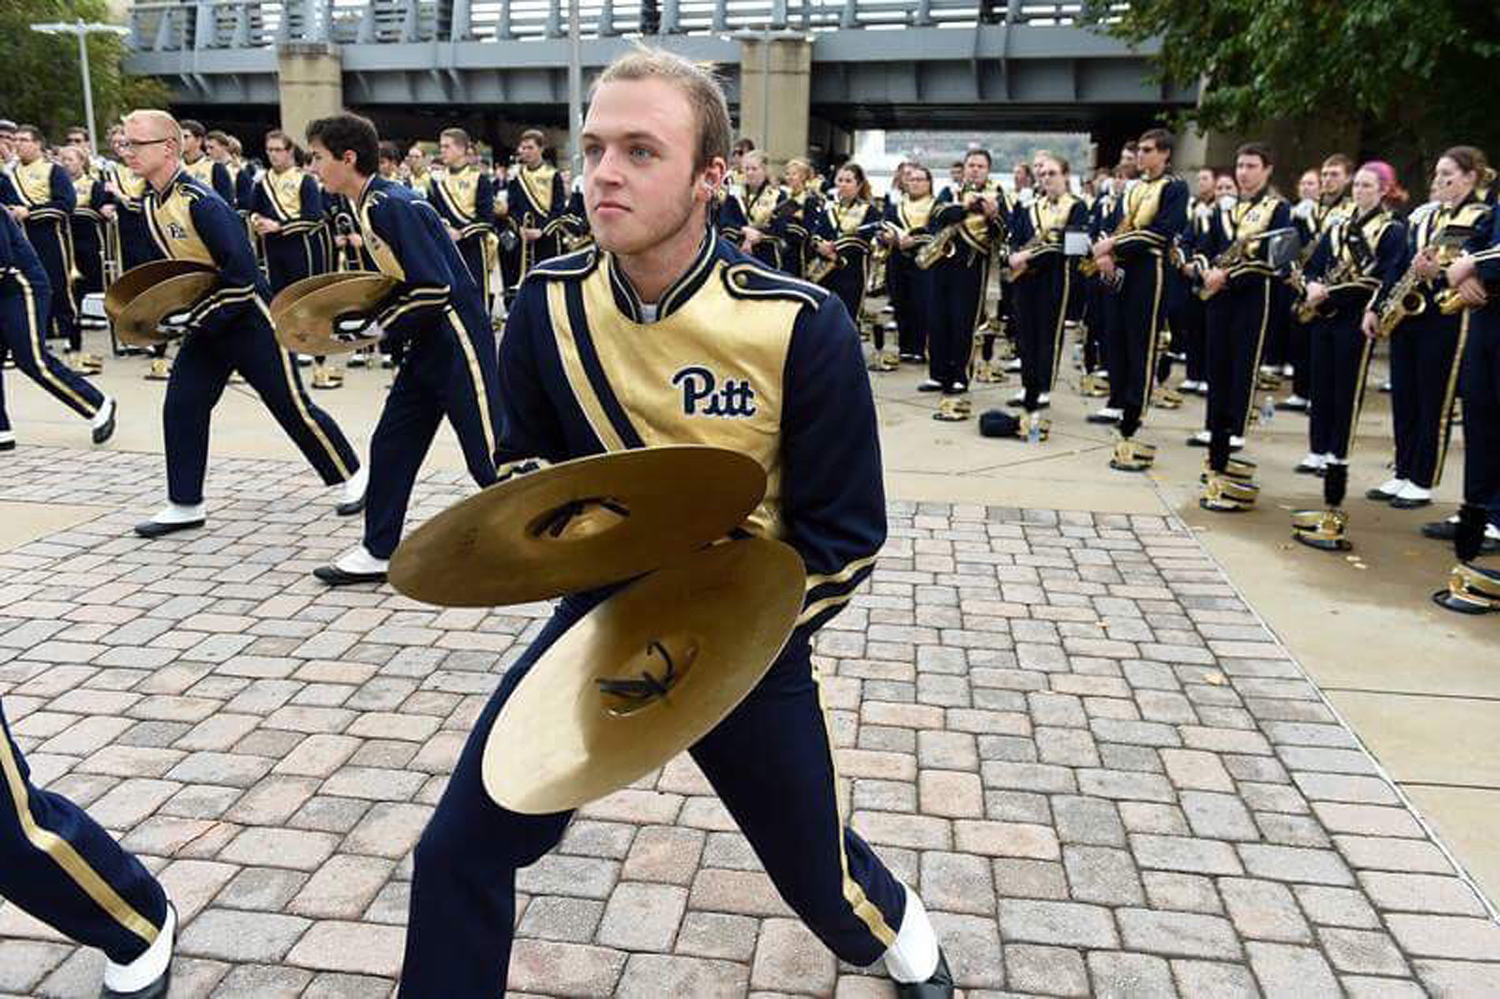 Senior music composition and economics major Jonathan Heller performs with the percussion section of Pitt Band outside Heinz Field.